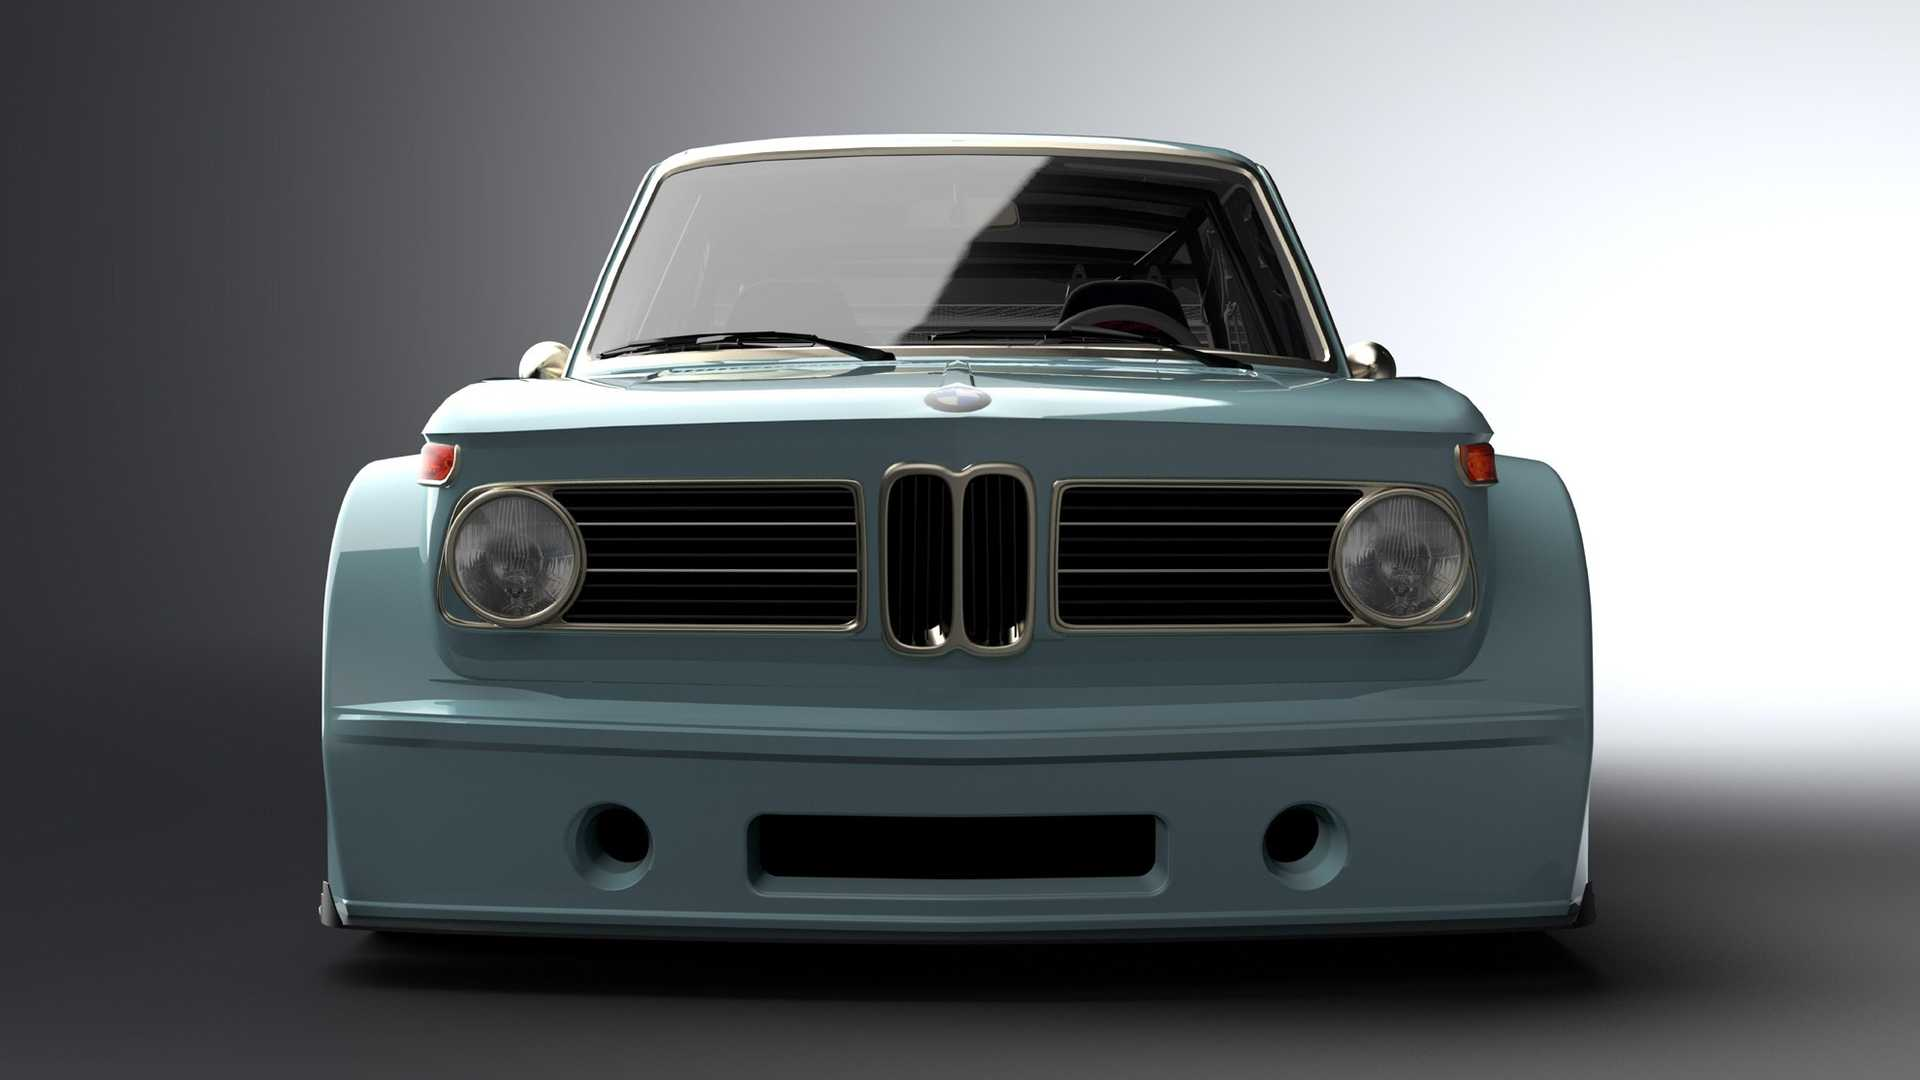 This Bmw 2002 Is A Mental Street Legal Bmw Race Car With V10 Power